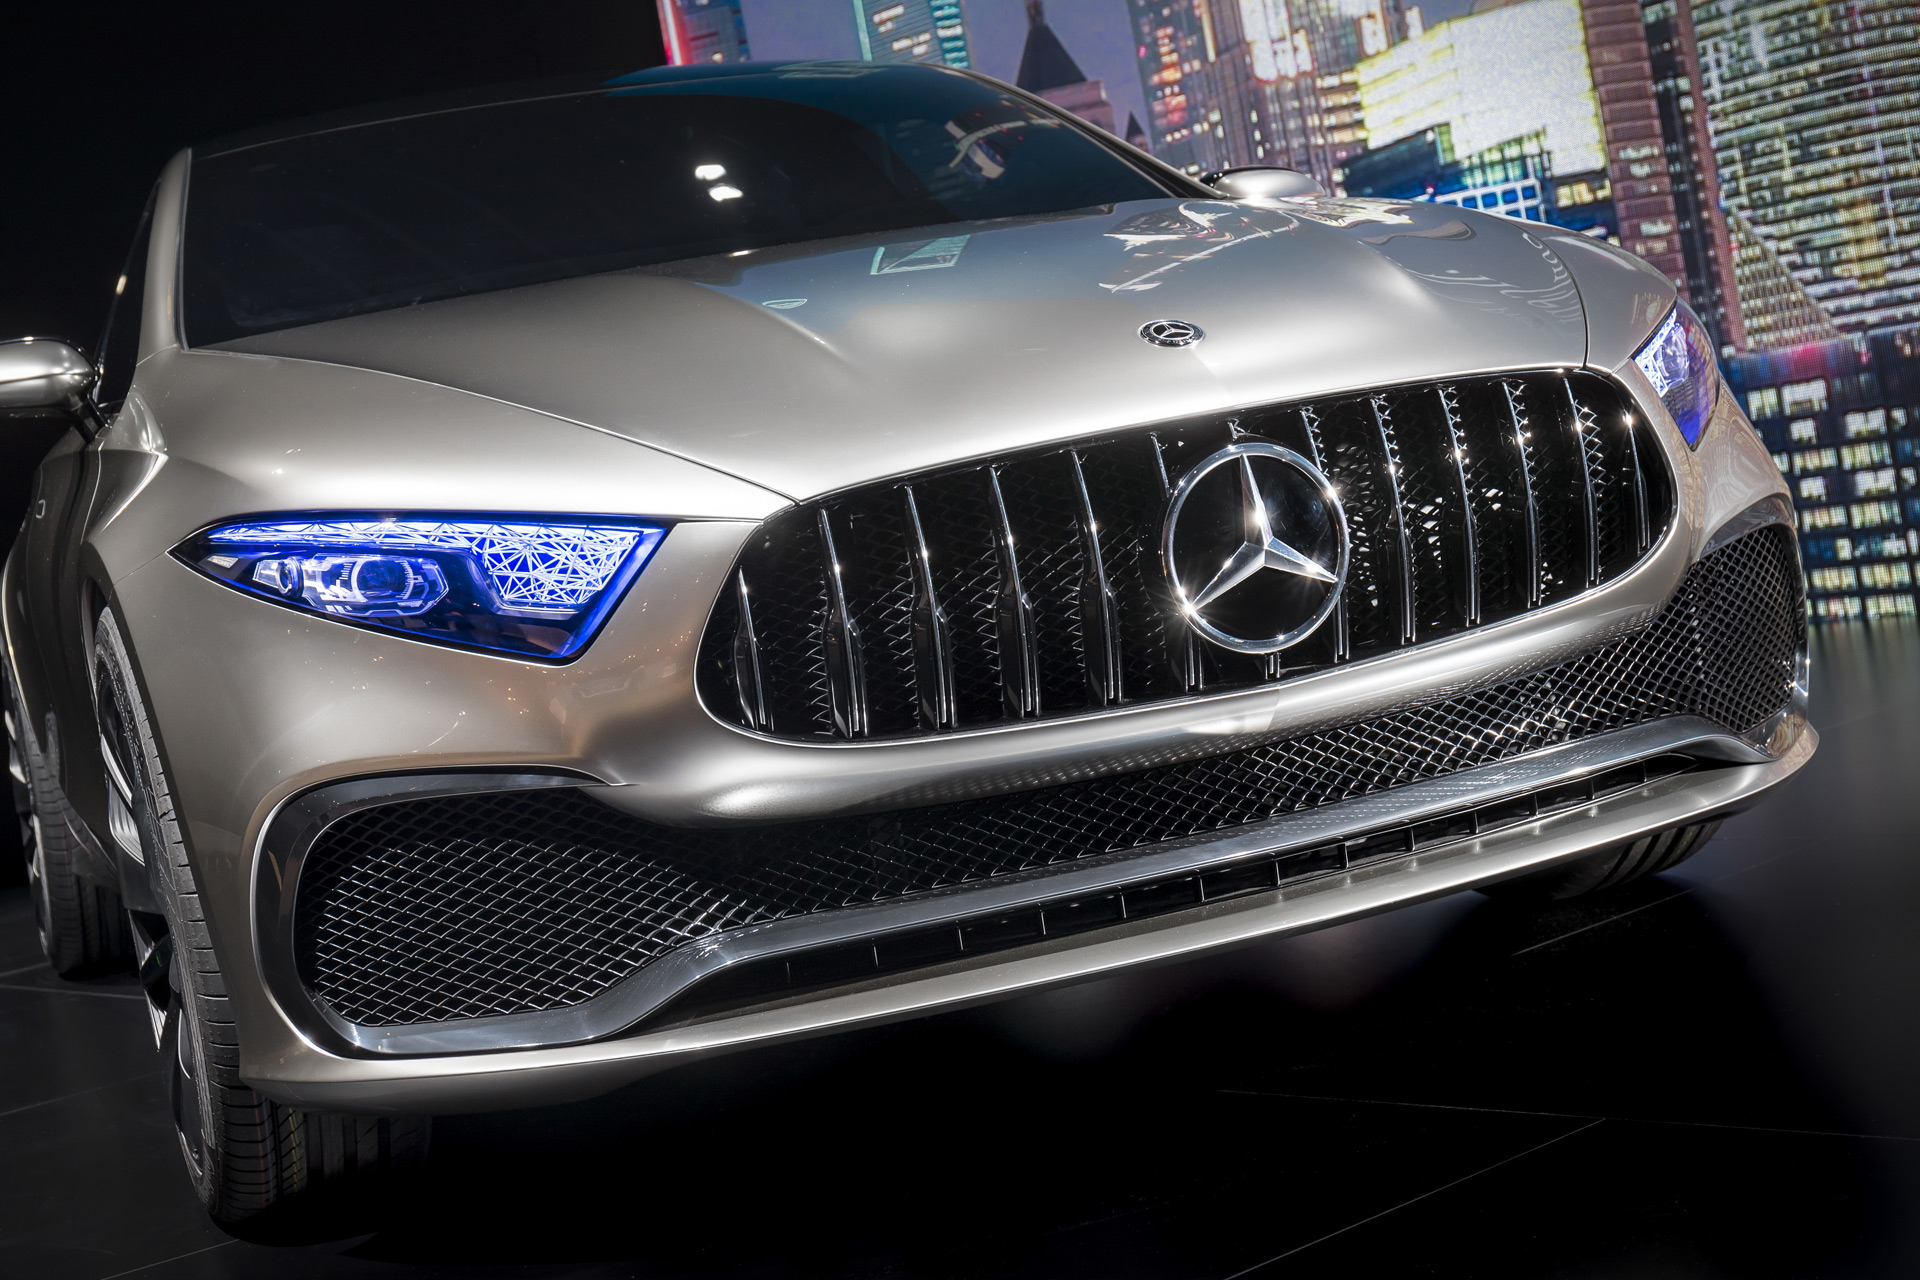 Car Expo Standsaur : This week s top photos the shanghai auto show edition